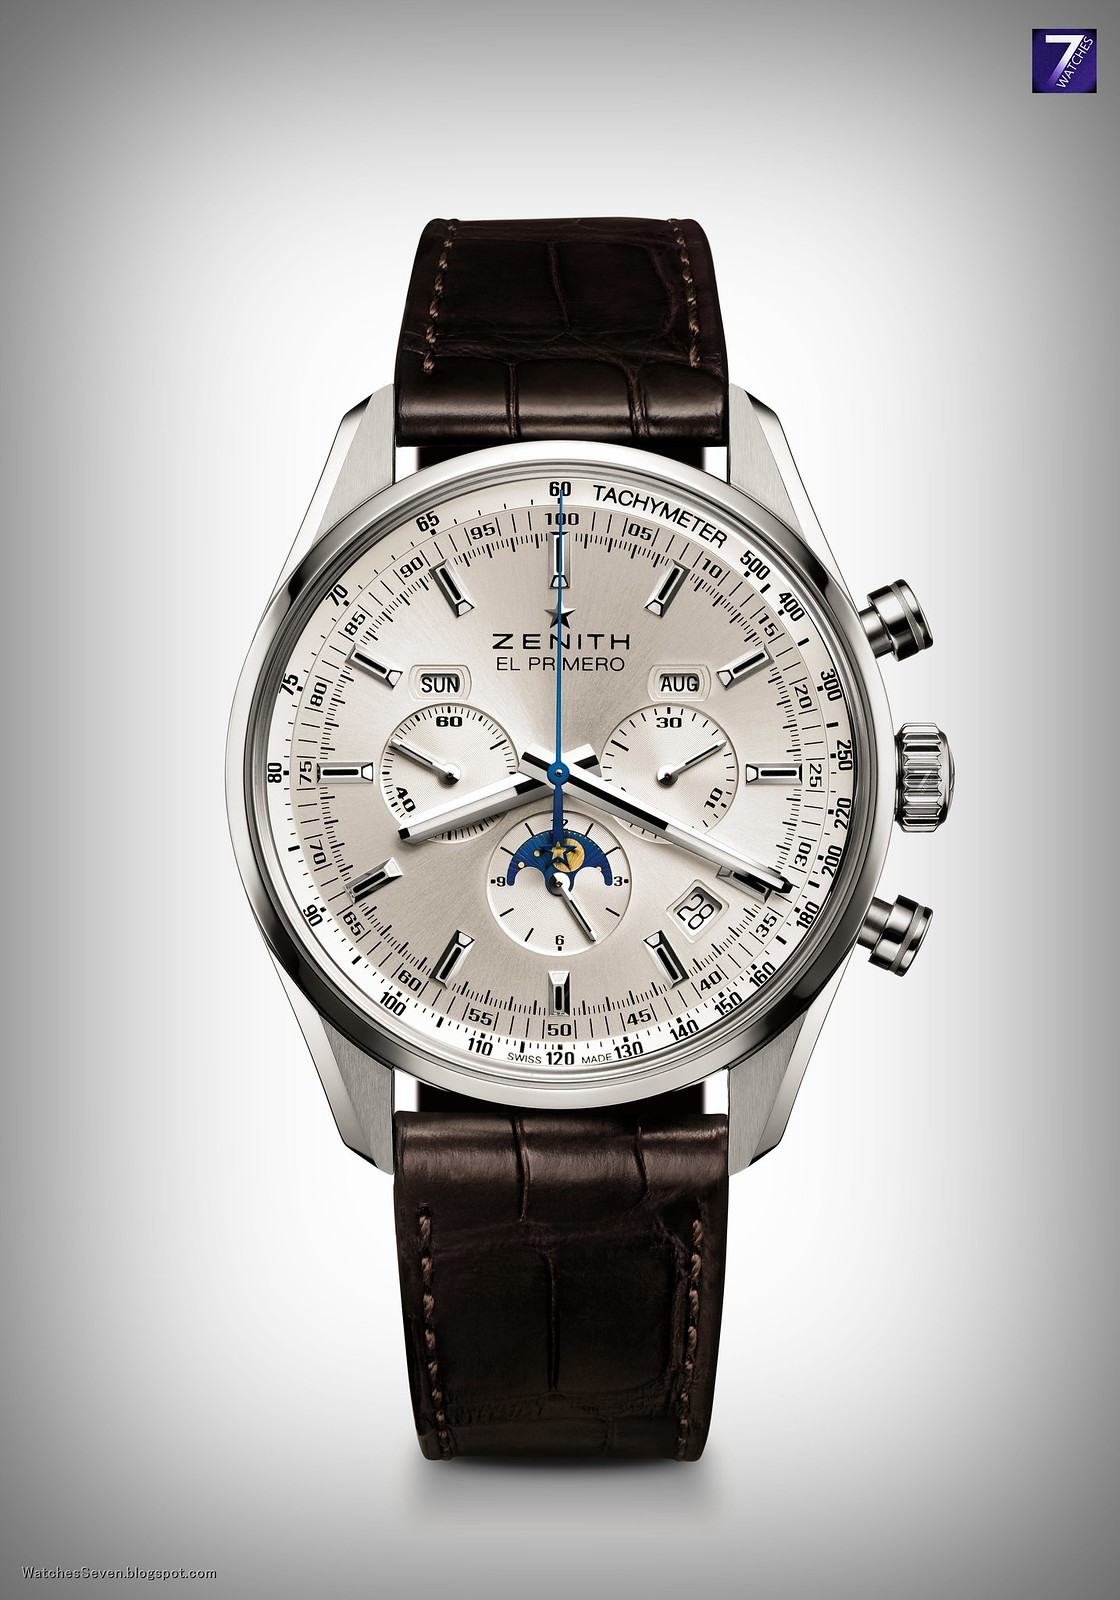 Watches 7 zenith el primero 410 chronograph for Zenith watches